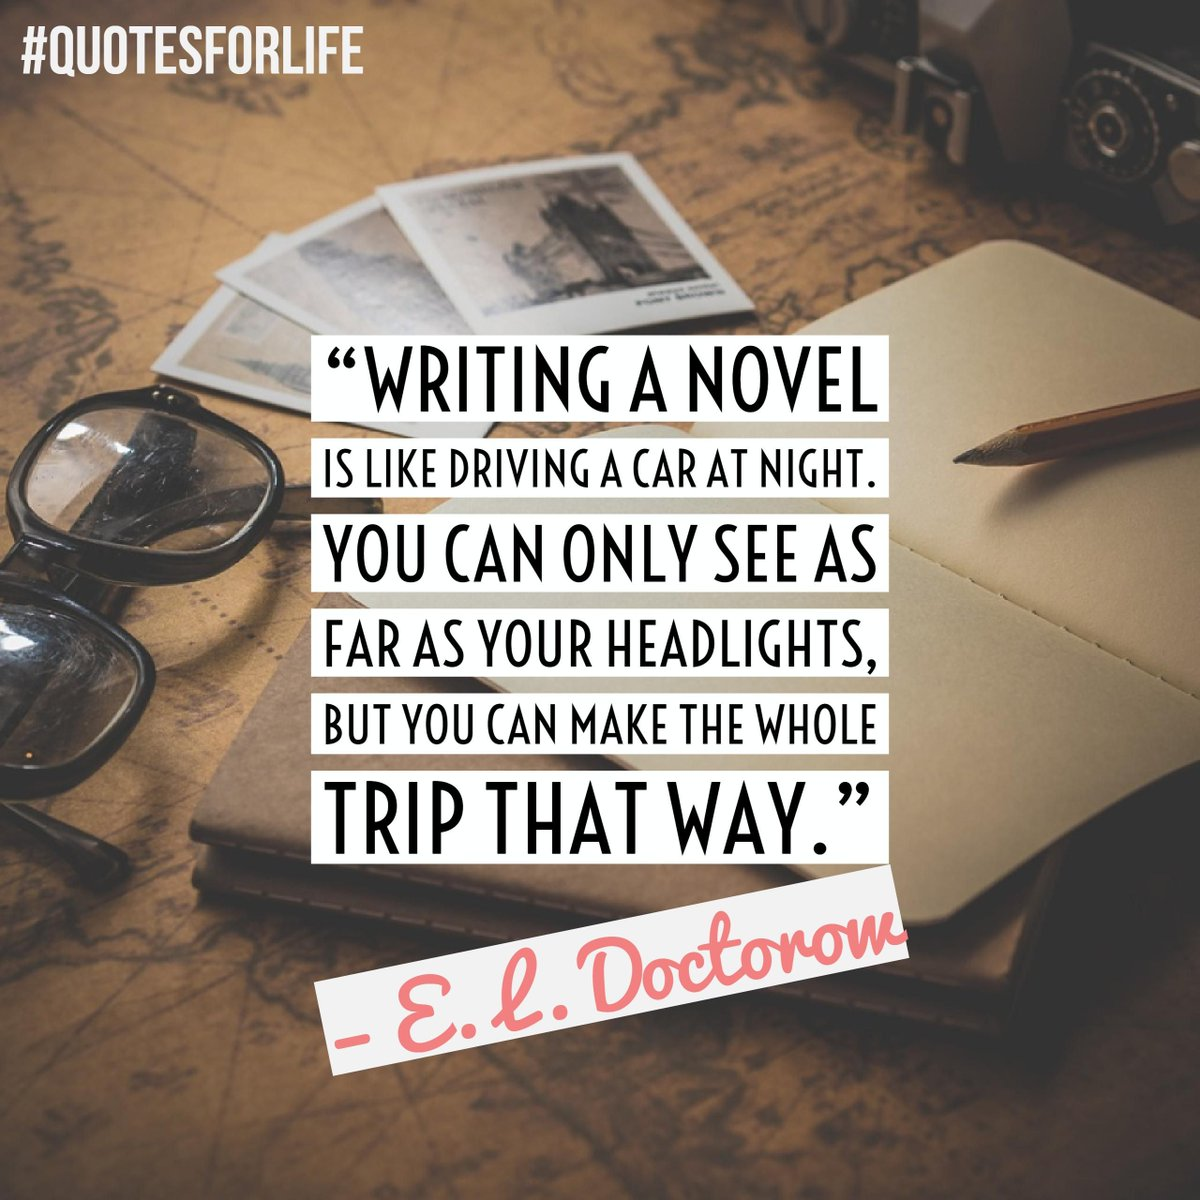 Quotes For Life On Twitter Writing A Novel Is Like Driving A Car